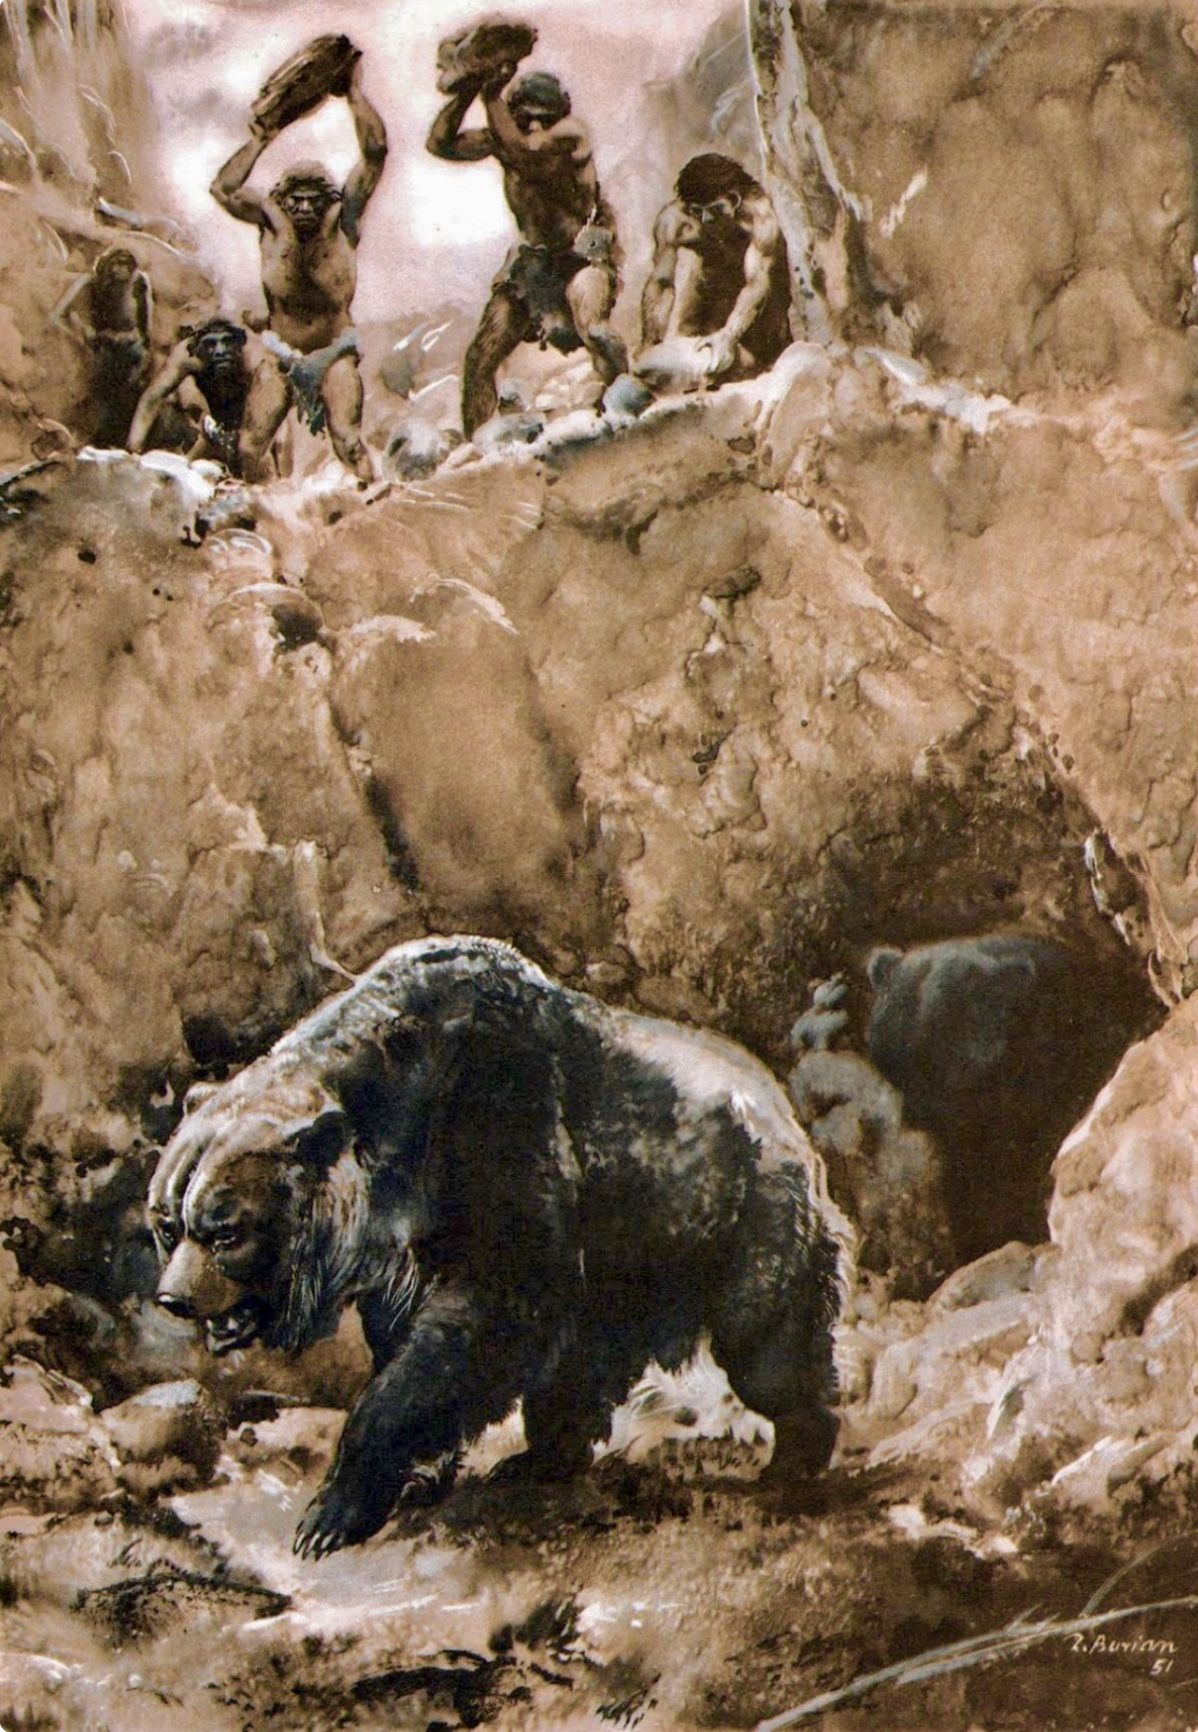 Ice Age hunters attempting to kill a cave bear. The cave